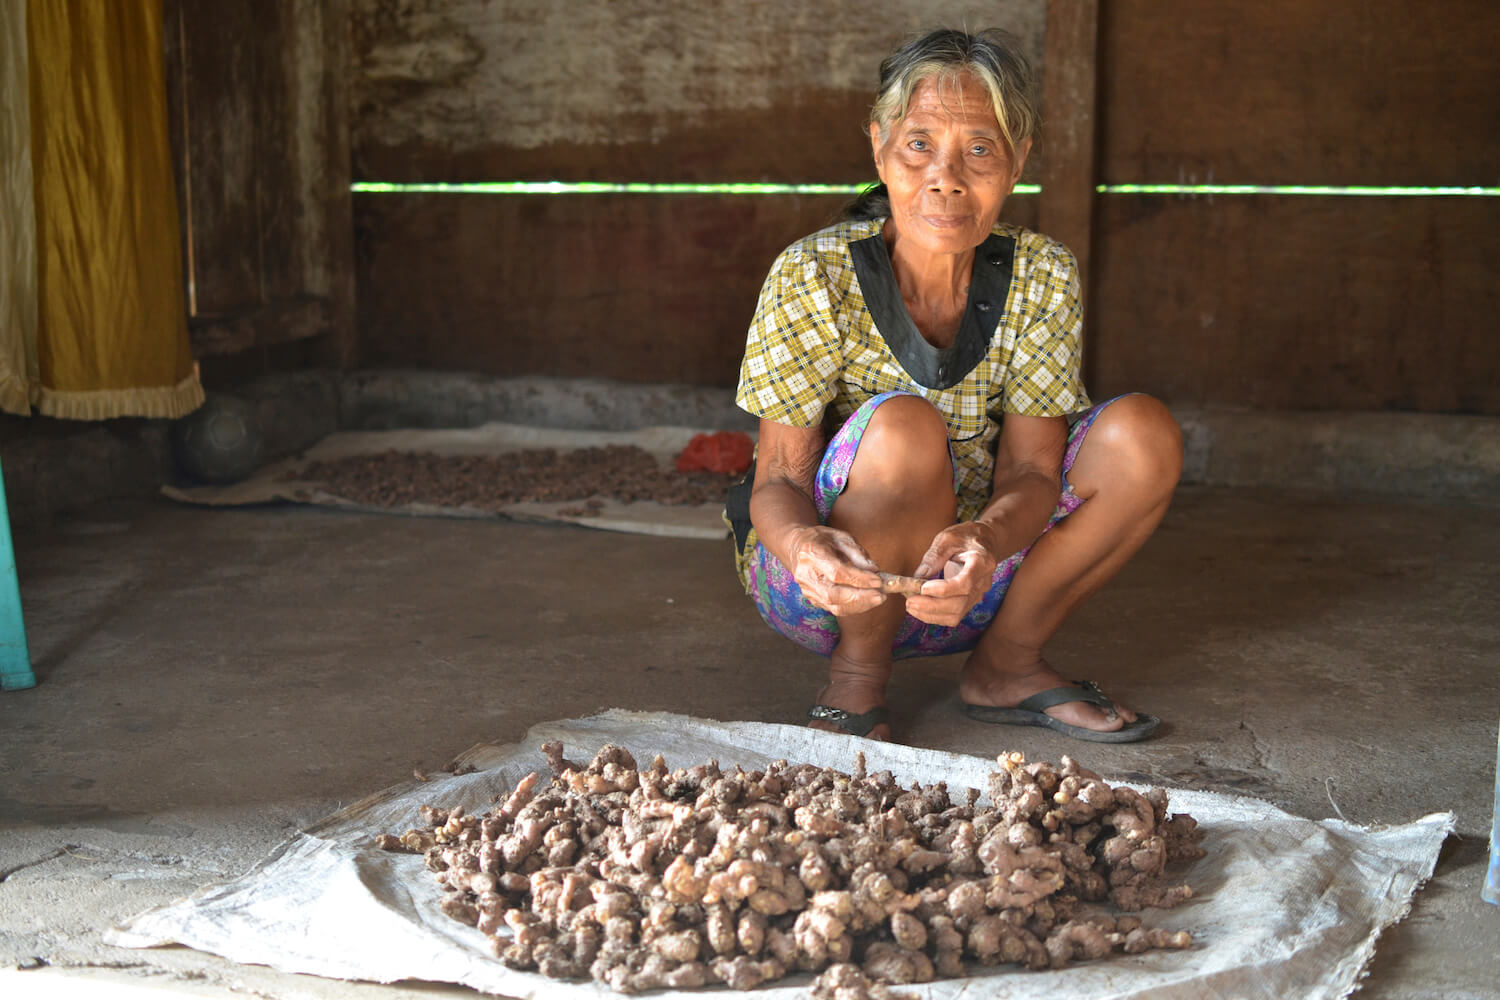 Older woman sitting behind products from her home garden.